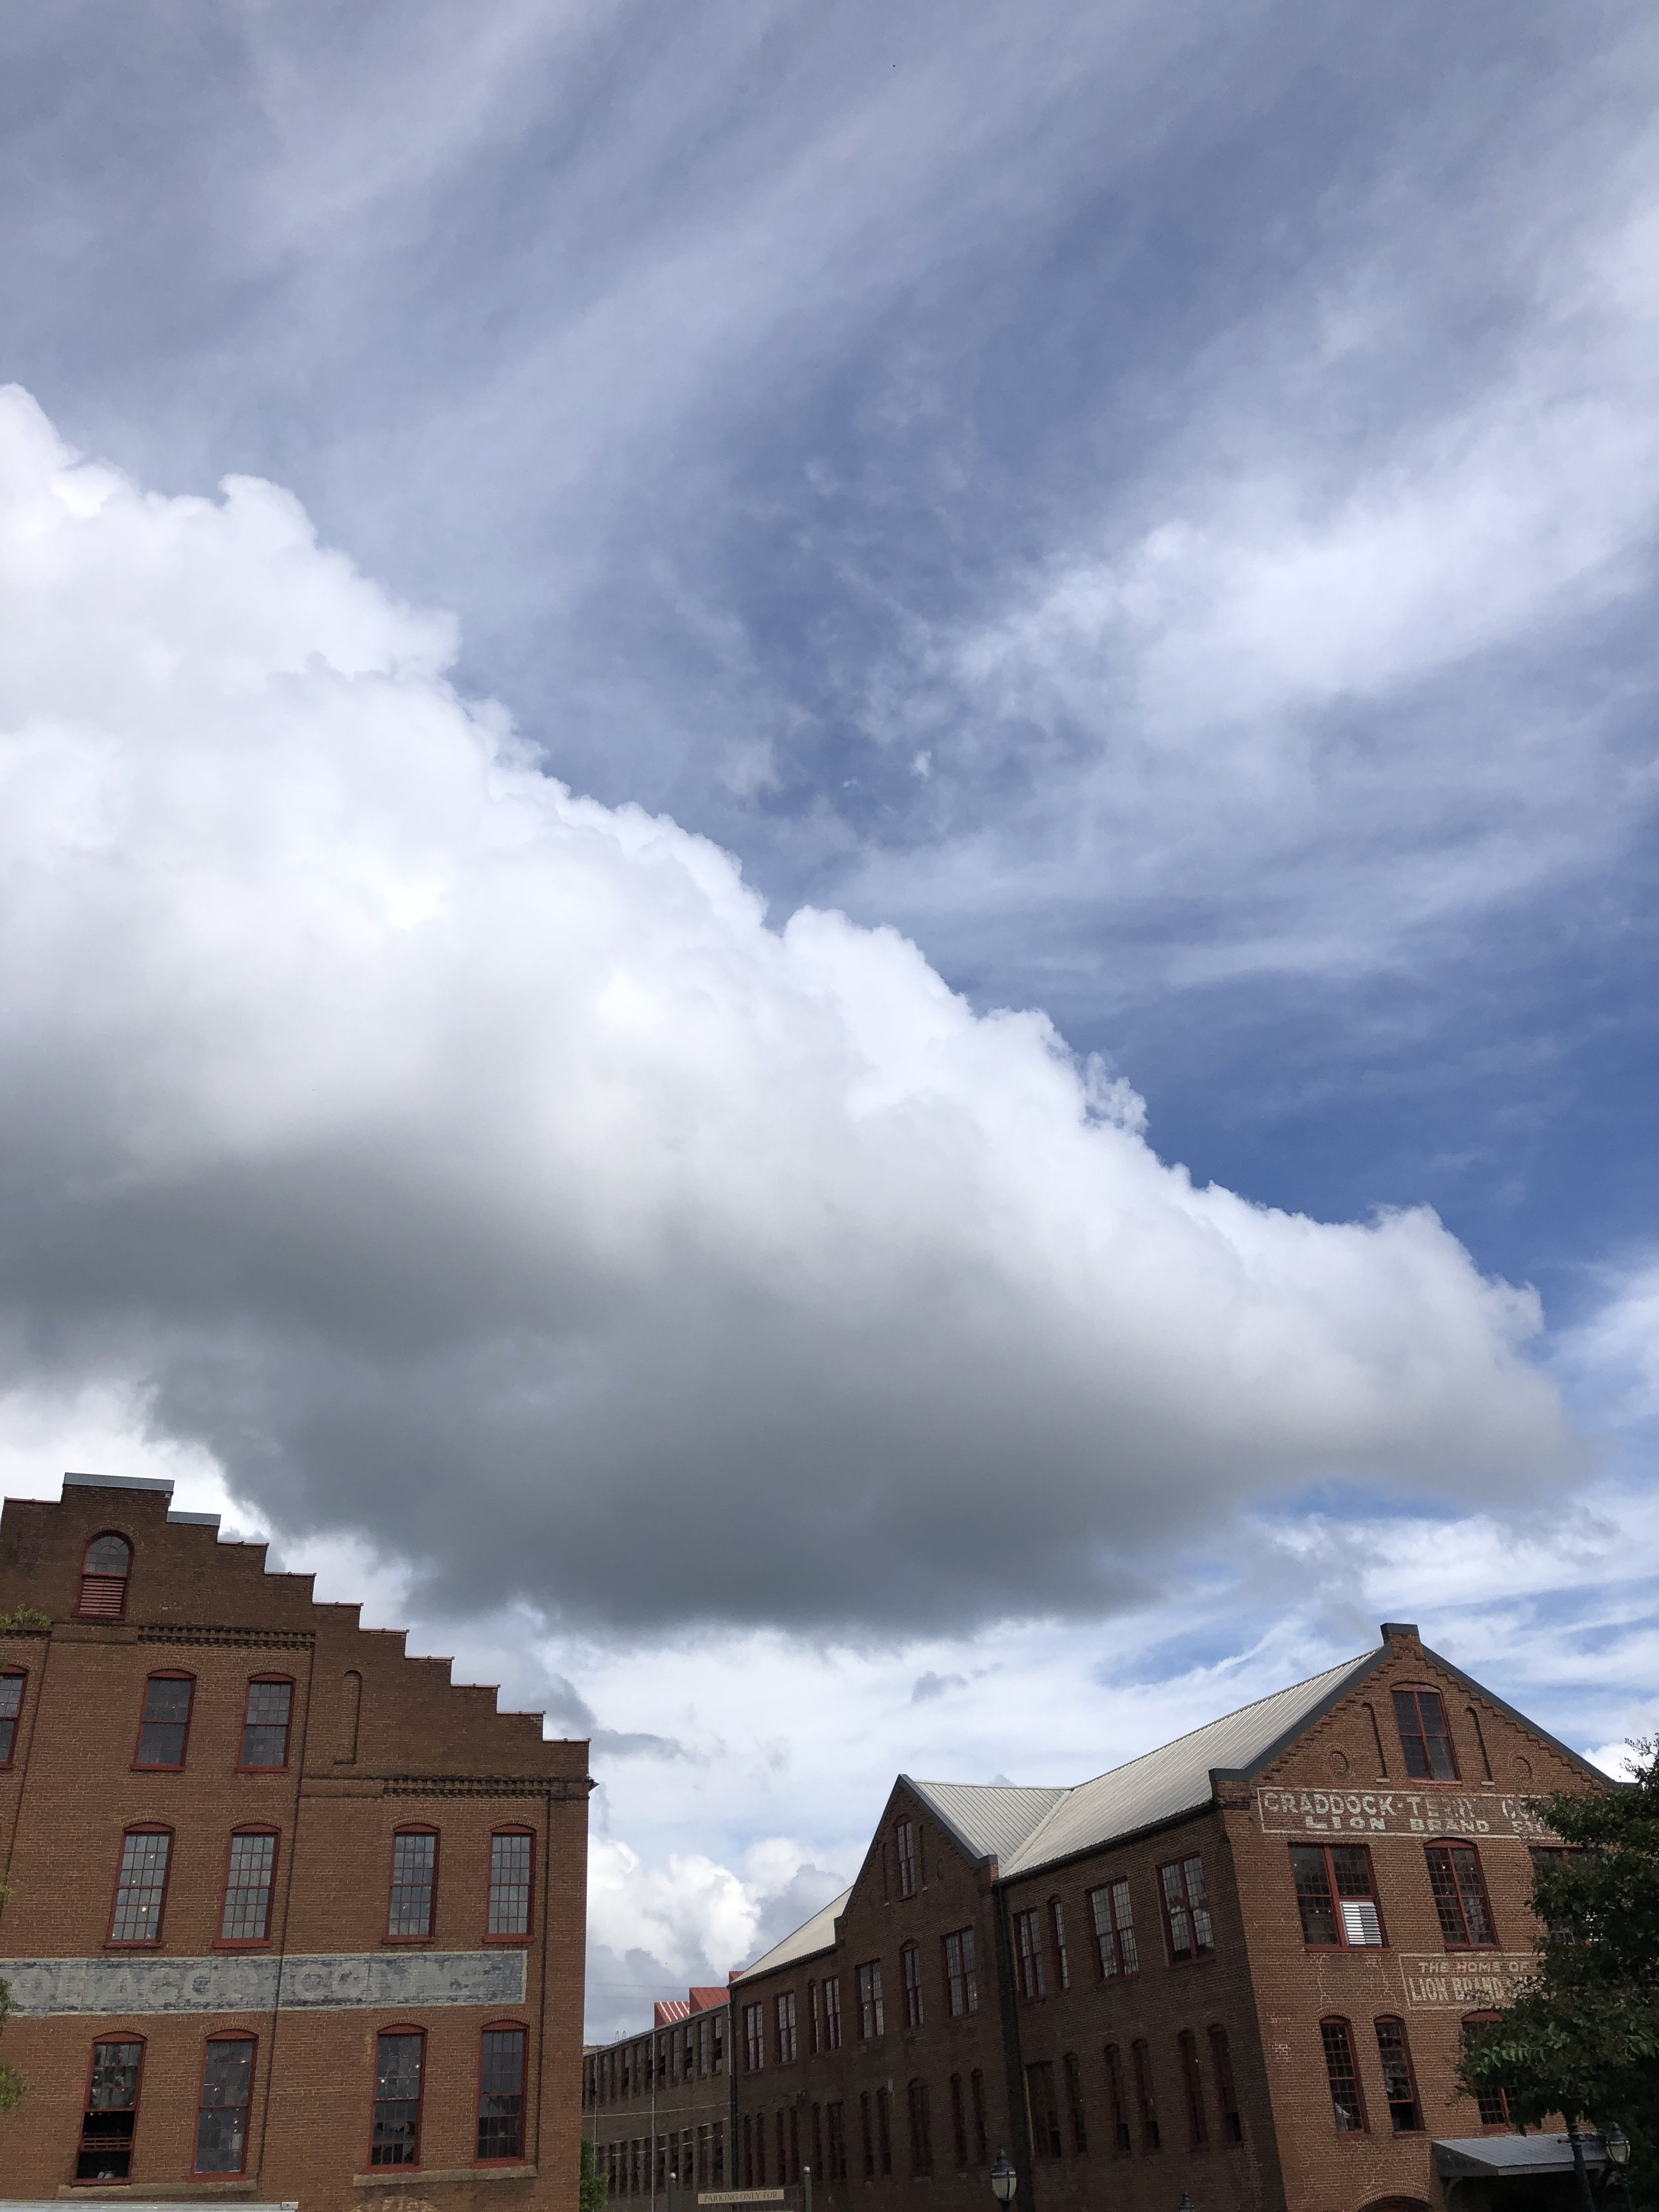 This big cloud looks like it's resting on the rooftops.